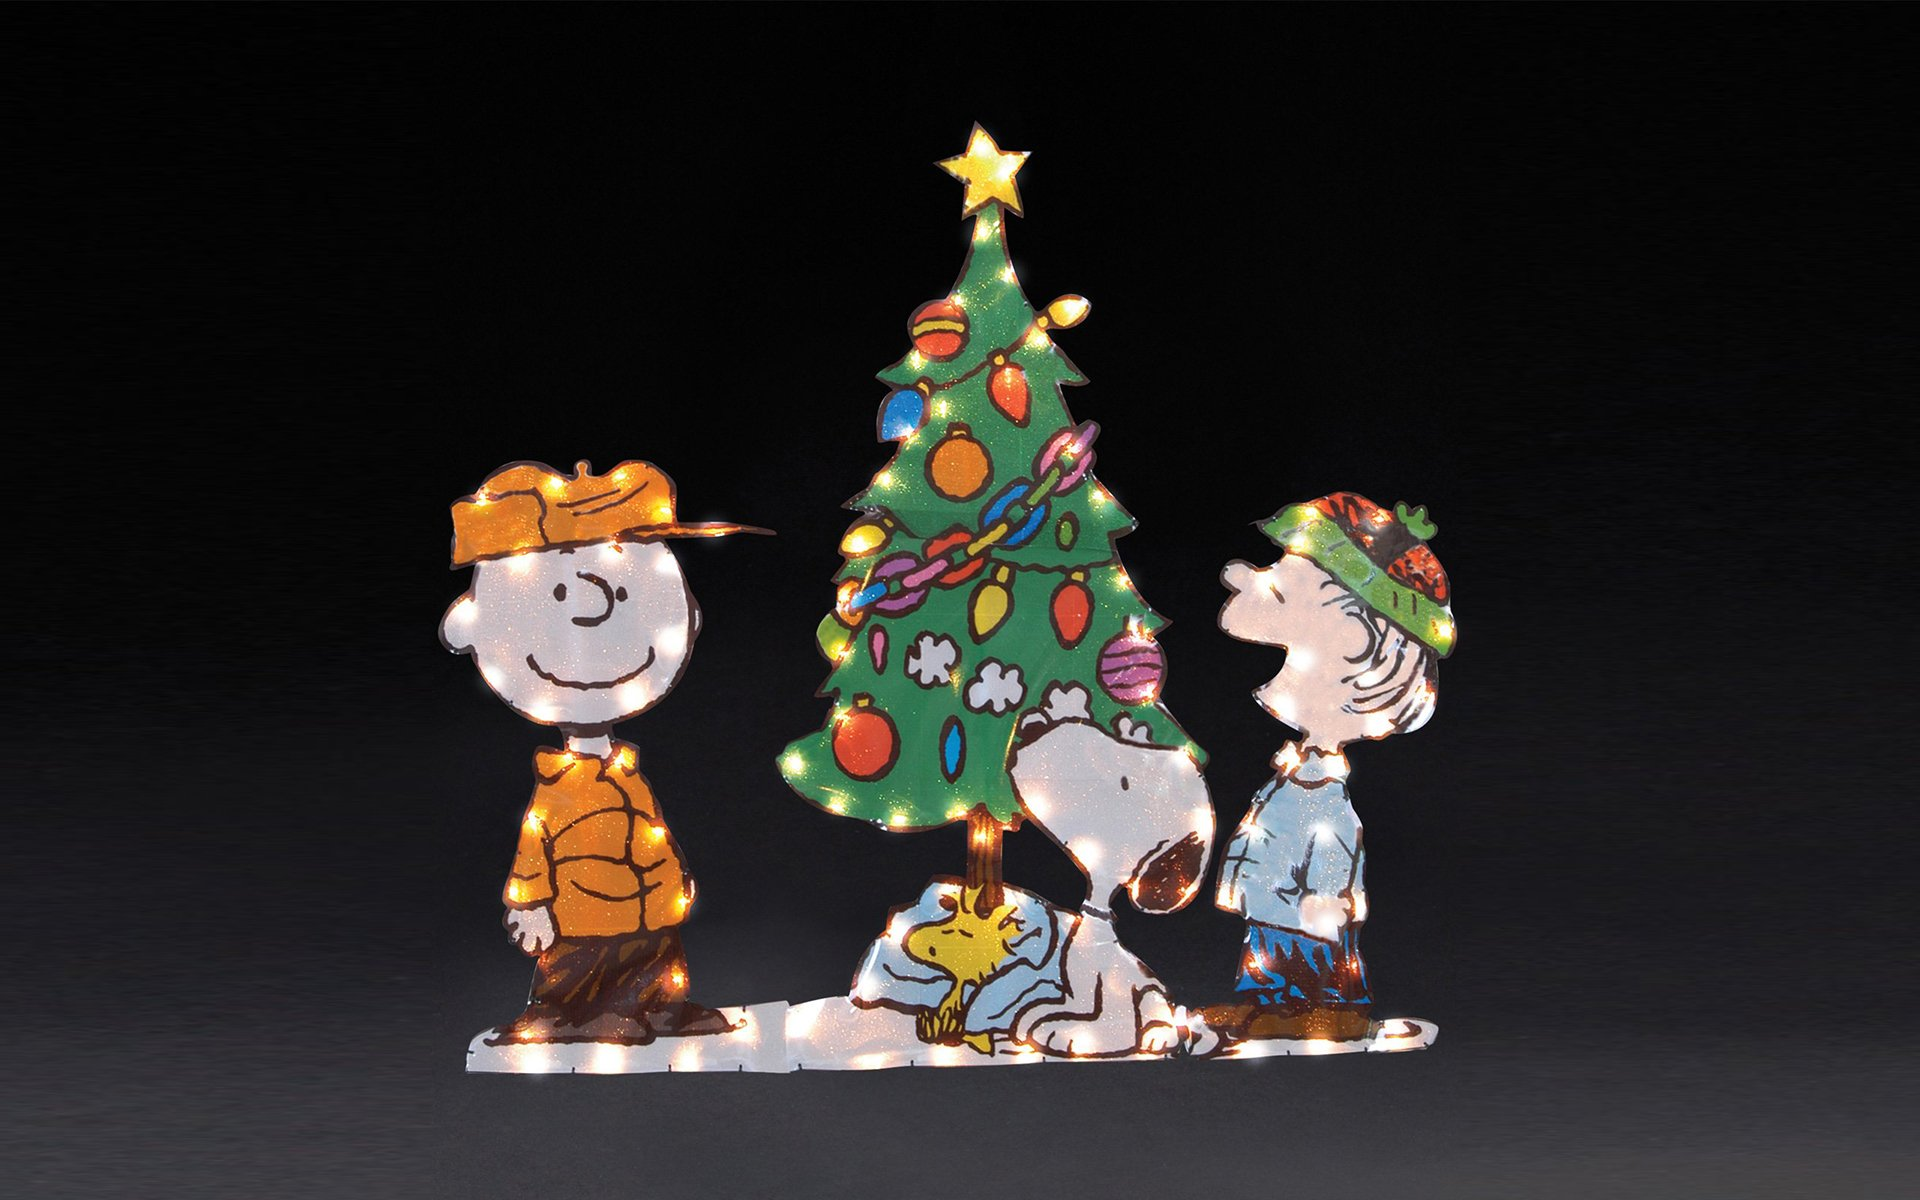 A Charlie Brown Christmas Hd Wallpaper Background Image